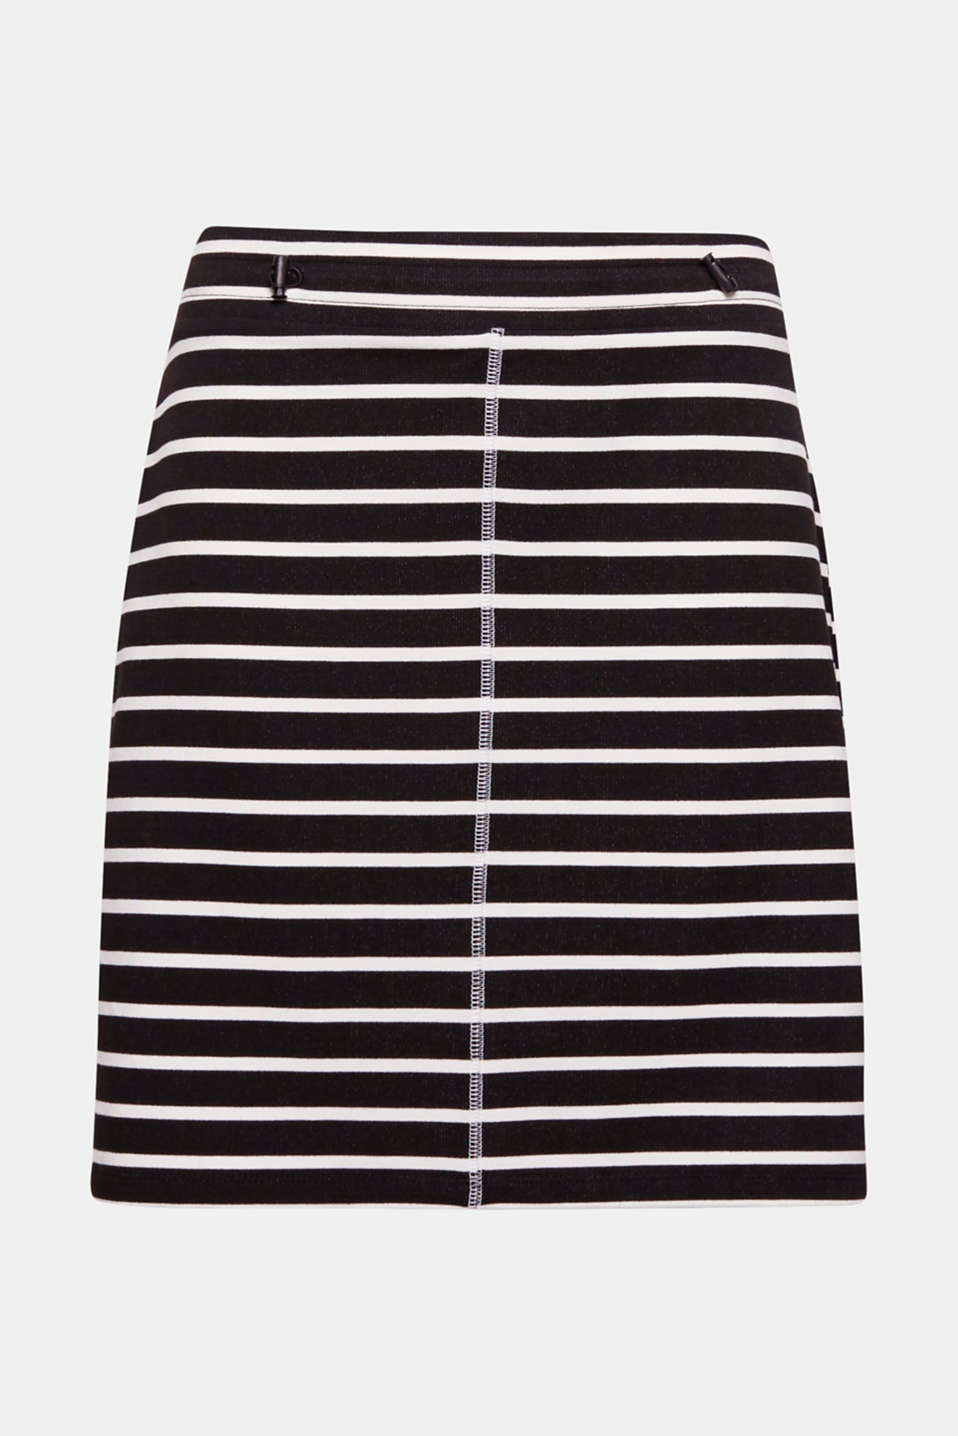 A great essential: this soft sweatshirt skirt is defined by its exceptional comfort, sporty details and classic striped look.